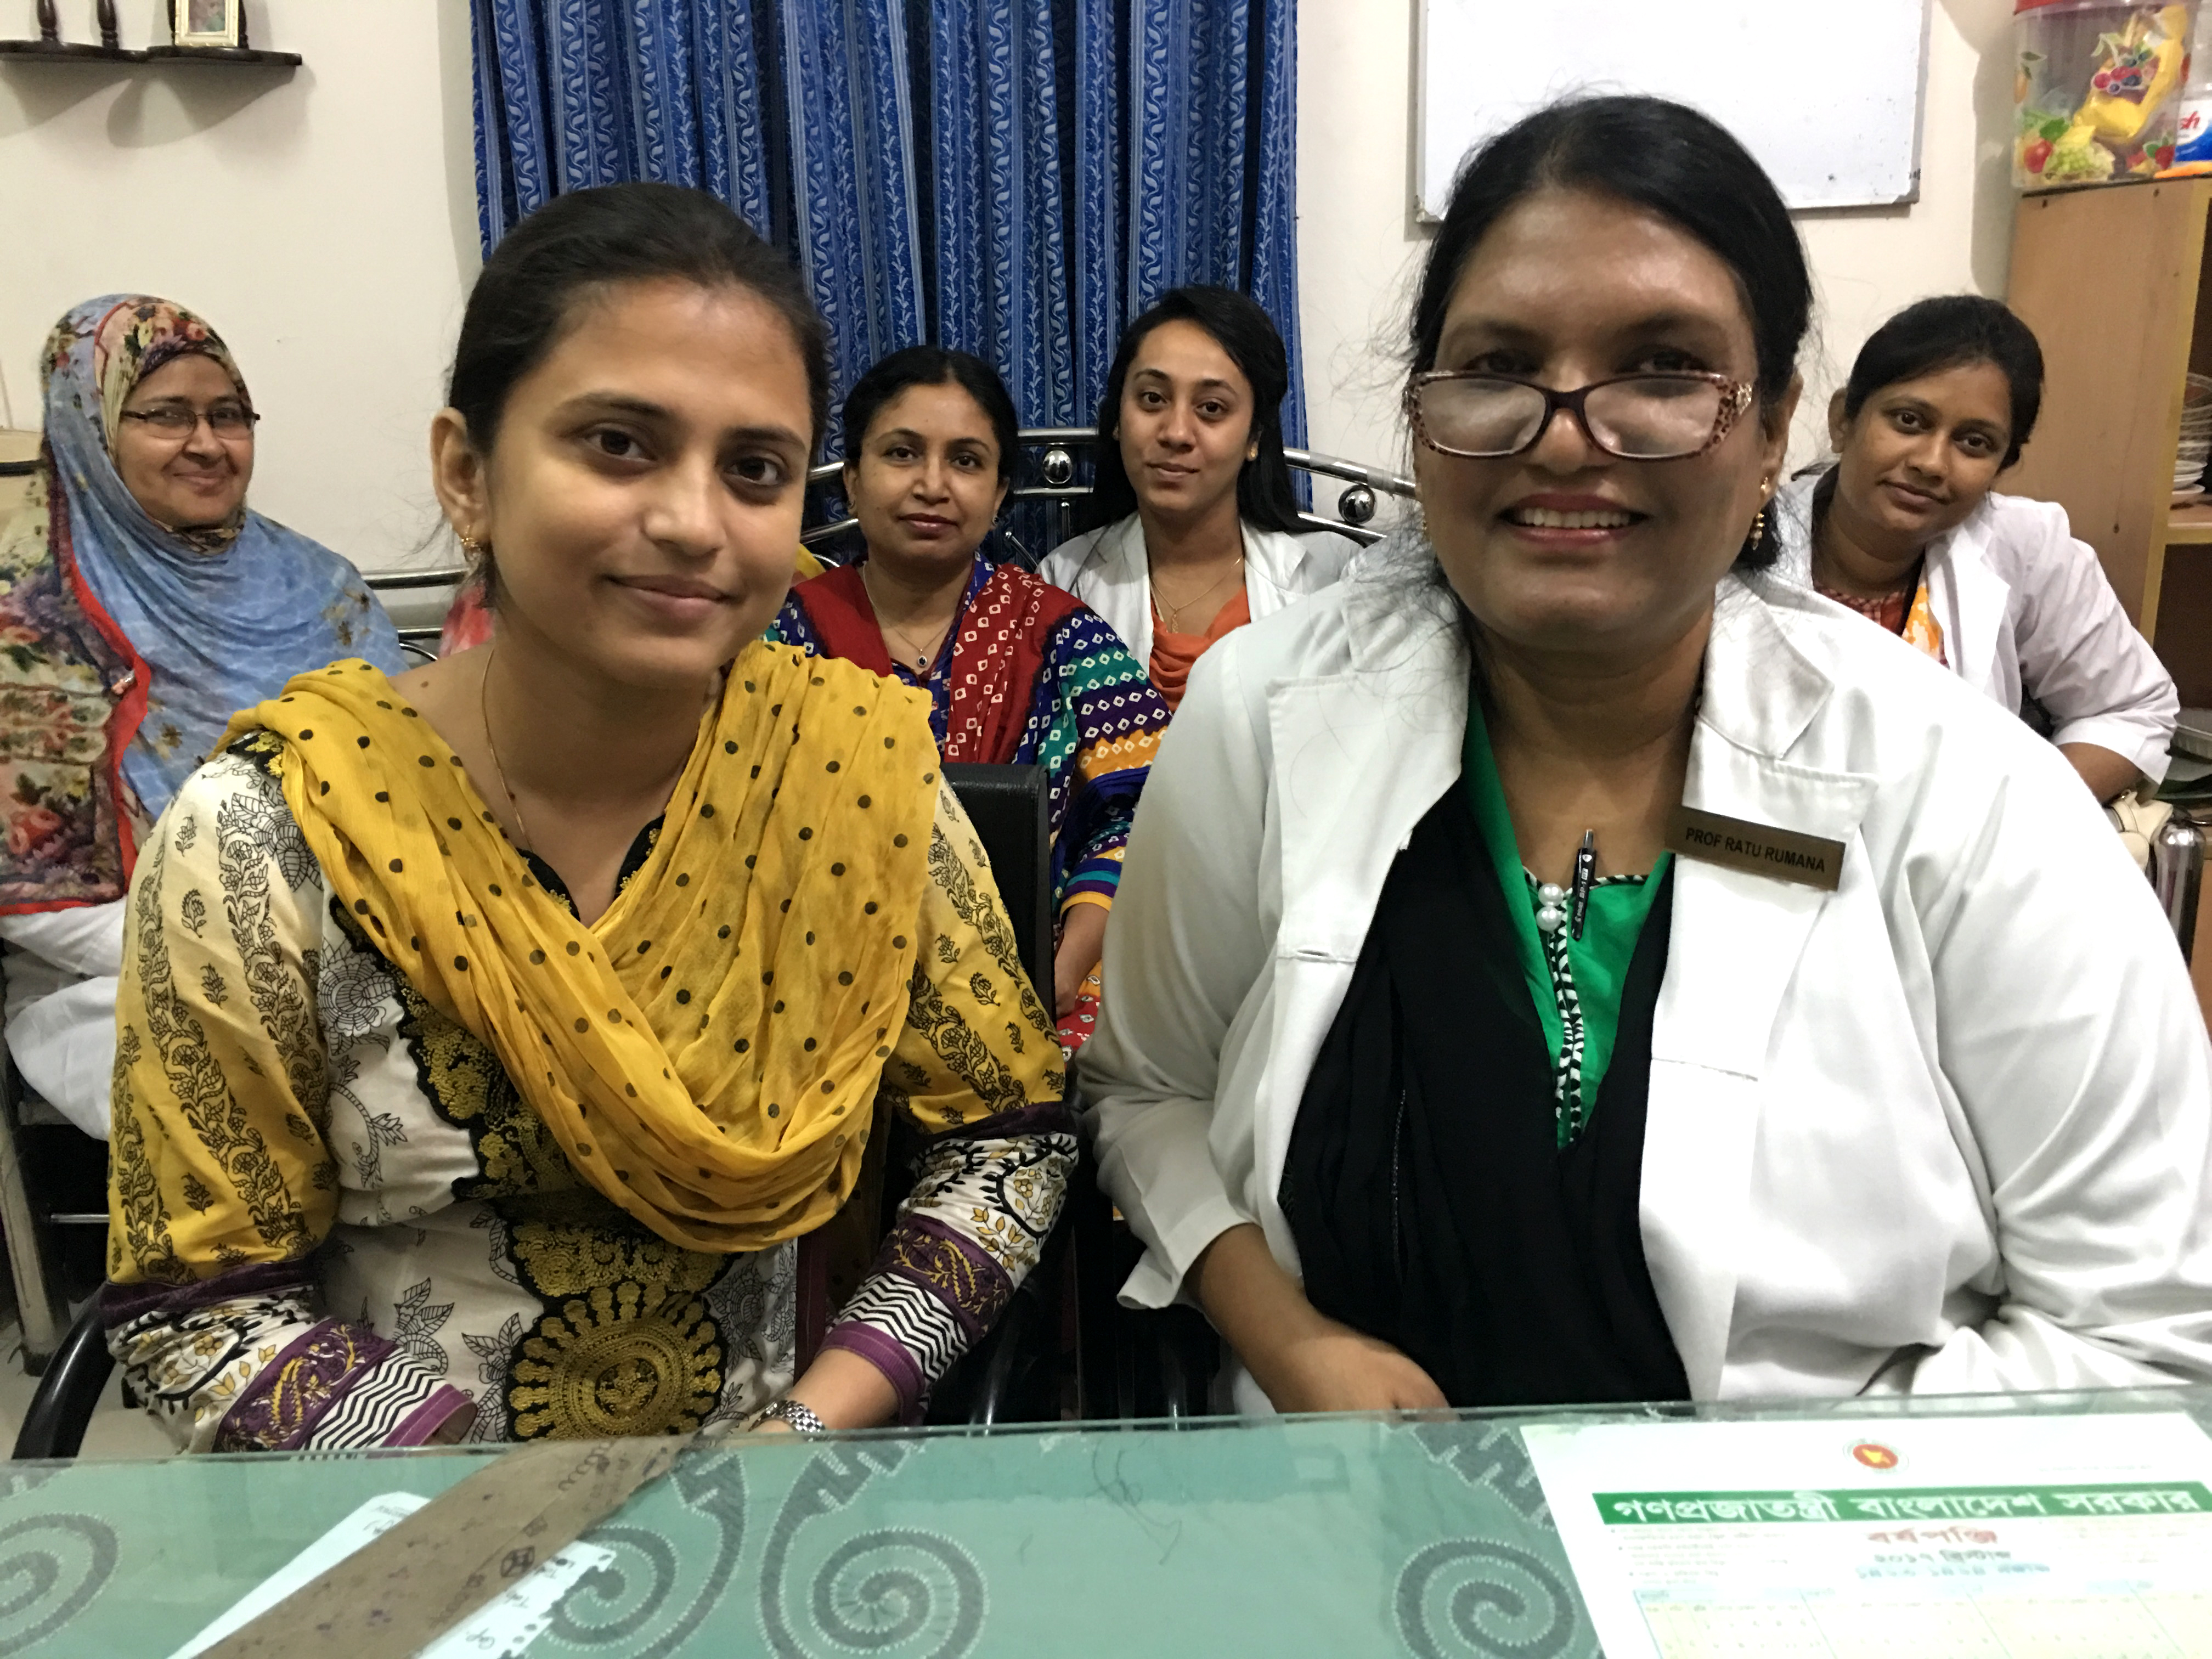 Bangladesh Approves Pilot Project to Improve Tubal Ligation Services